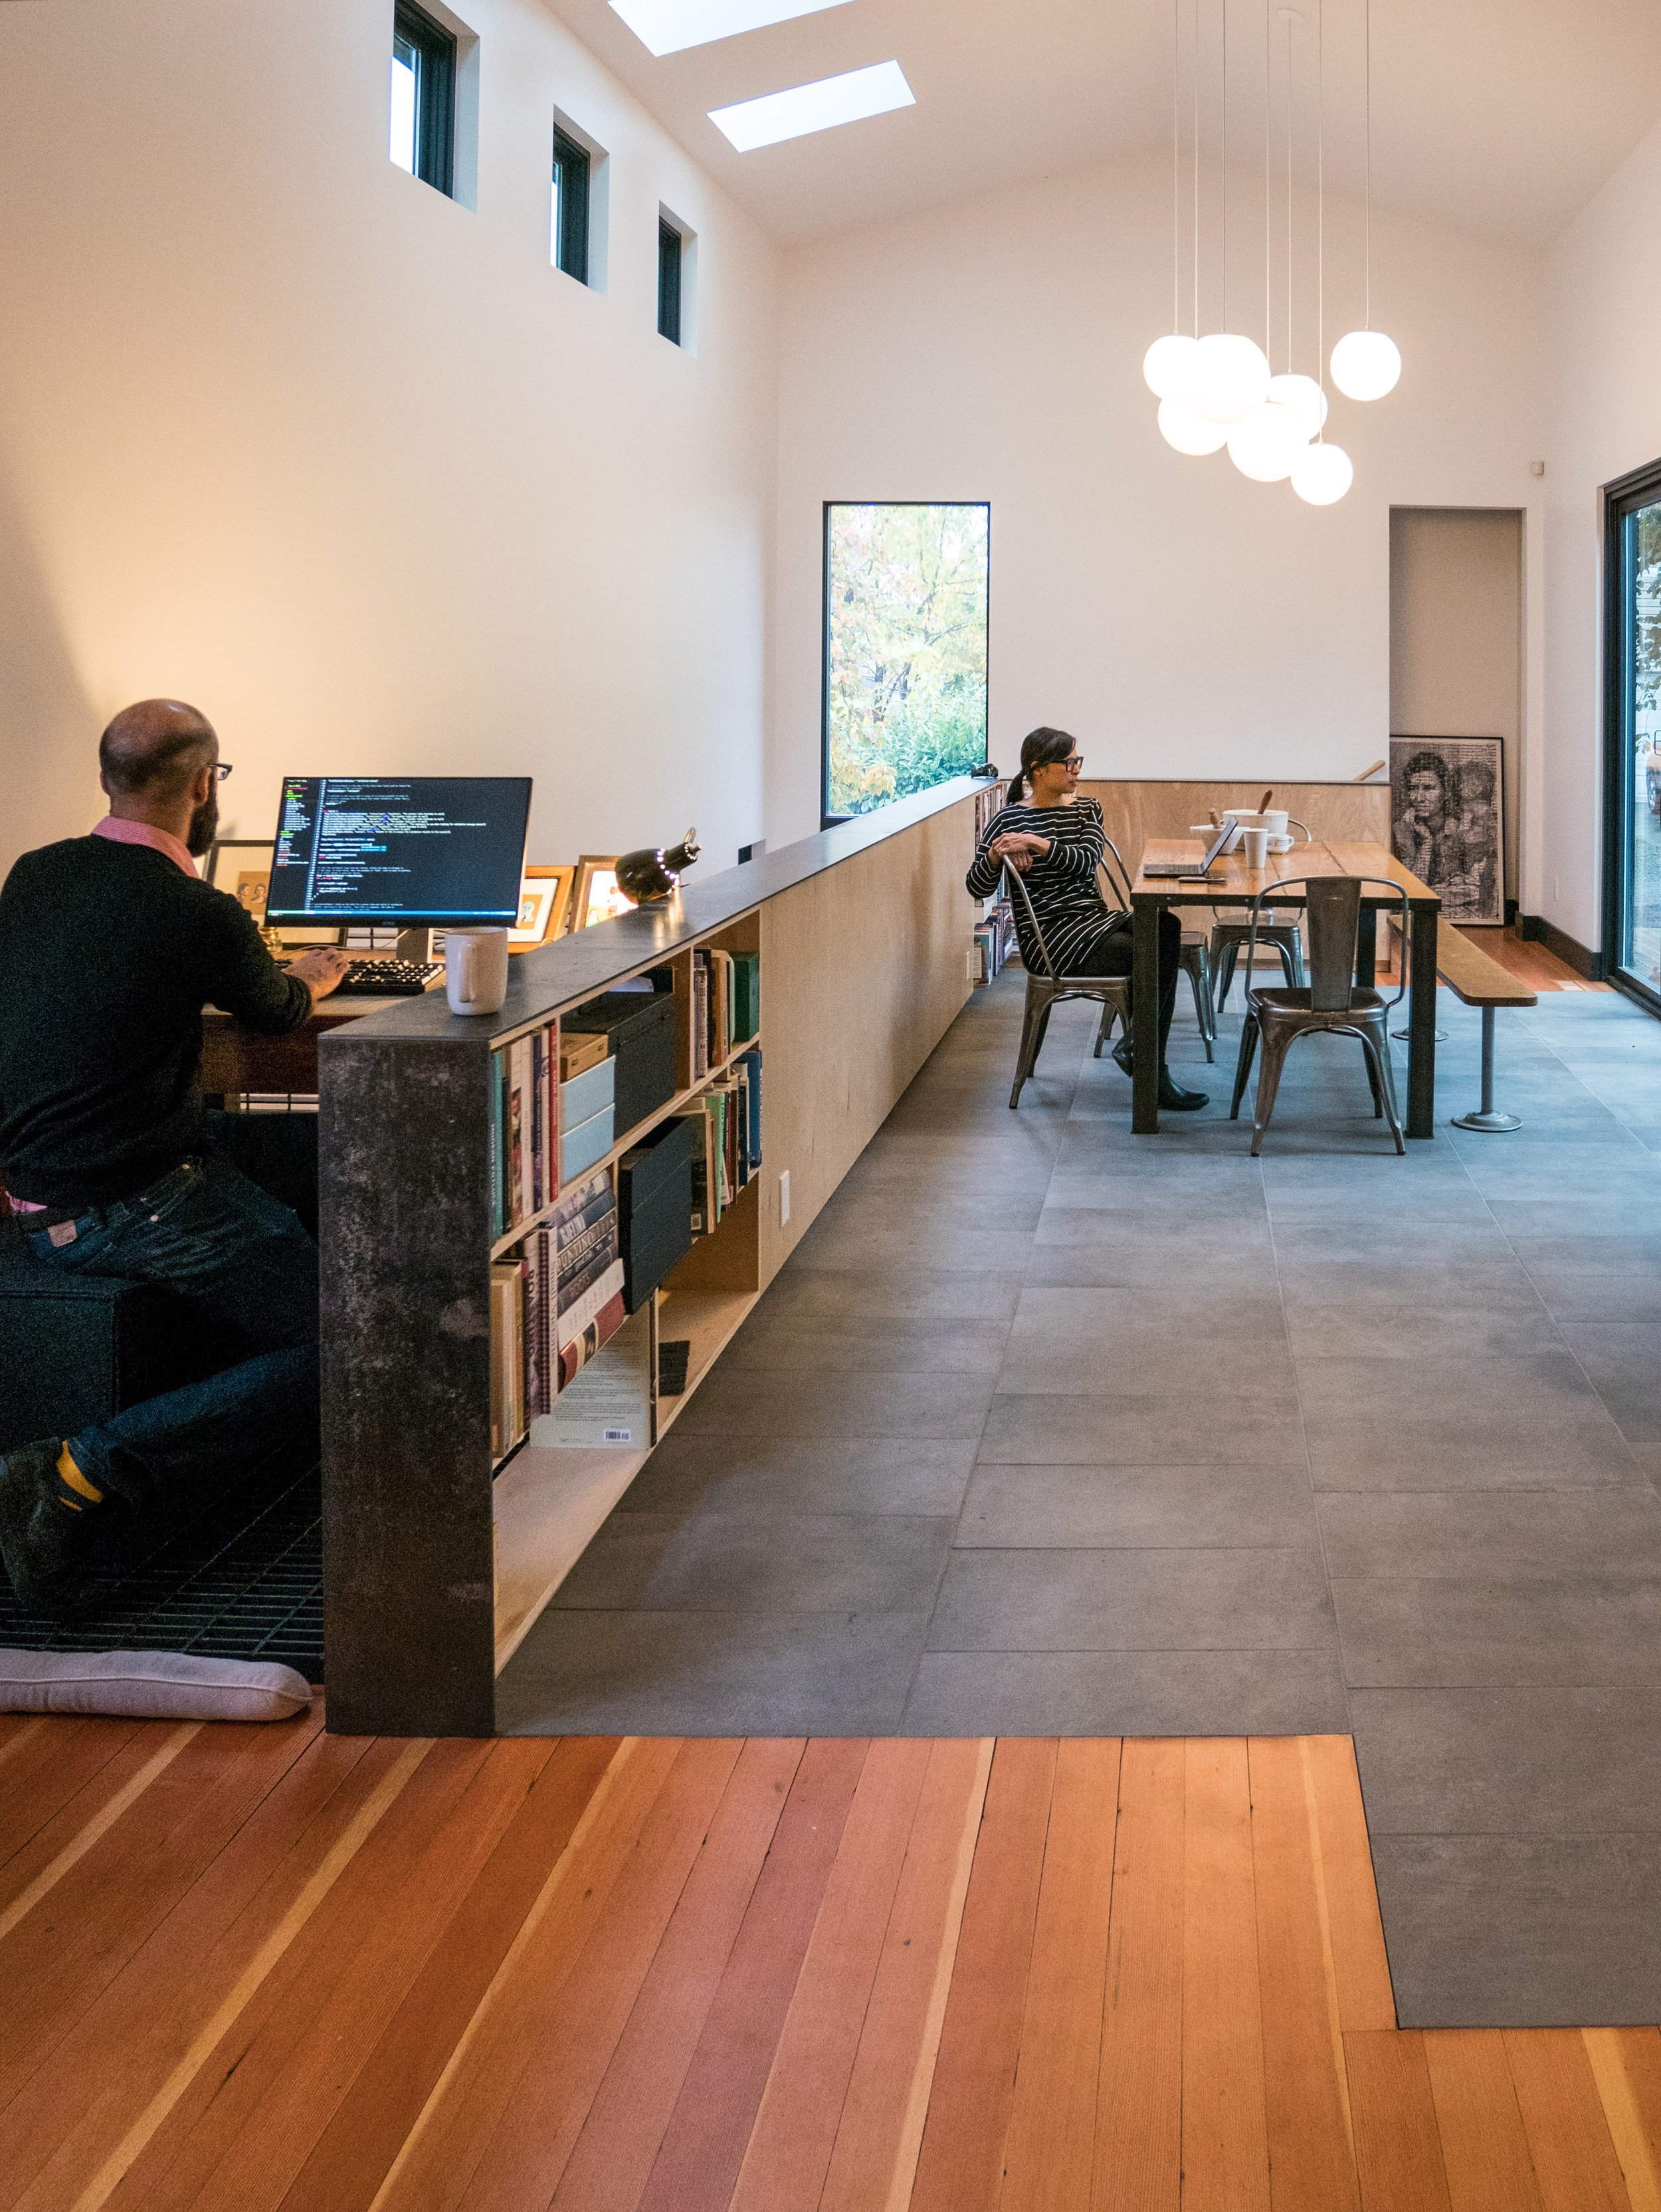 Our clients sometimes work from home. A dedicated work space works best for one, while the other can work from a variety of locations in the house.